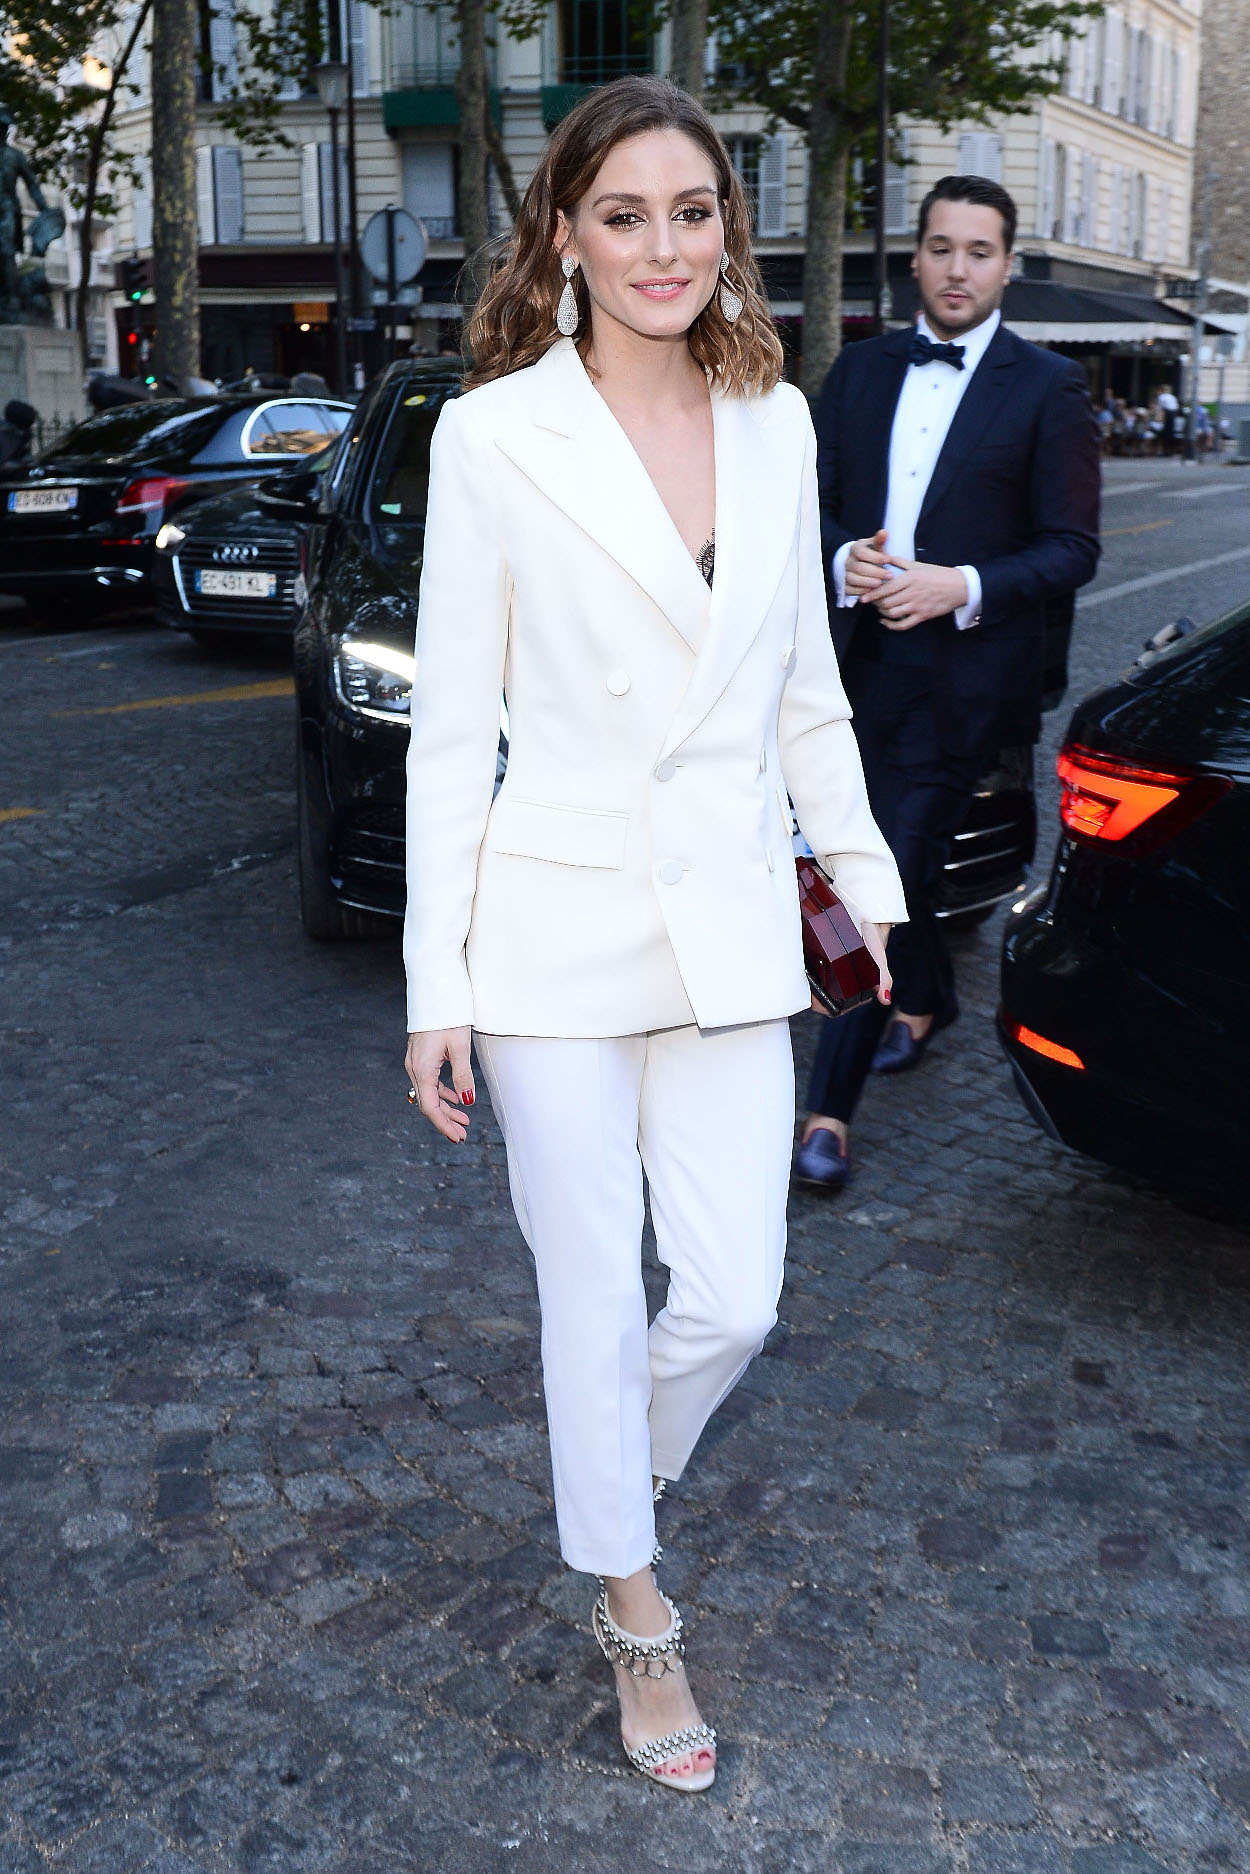 Celebrities attend the Vogue party in Paris, France.  Pictured: Olivia Palermo Ref: SPL5007967 030718 NON-EXCLUSIVE Picture by: SplashNews.com  Splash News and Pictures Los Angeles: 310-821-2666 New York: 212-619-2666 London: 0207 644 7656 Milan: +39 02 4399 8577 Sydney: +61 02 9240 7700 photodesk@splashnews.com  World Rights, No Poland Rights